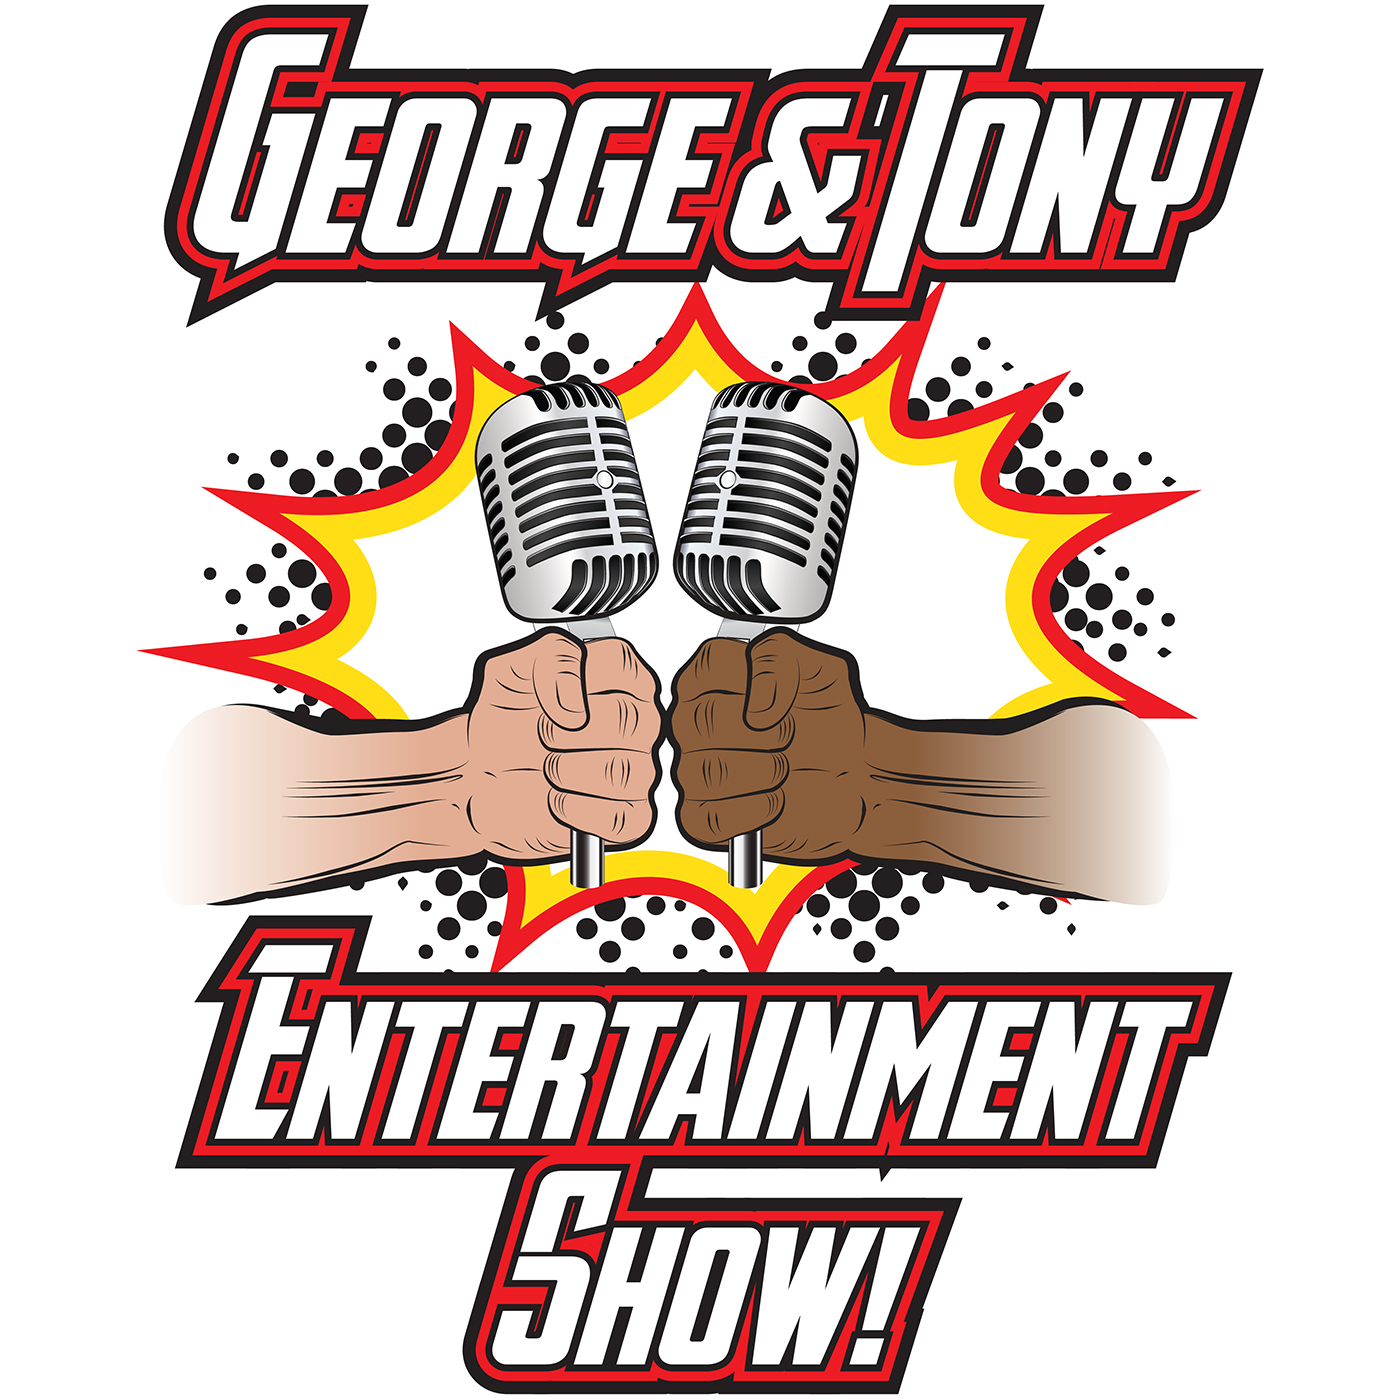 George and Tony Entertainment Show #117